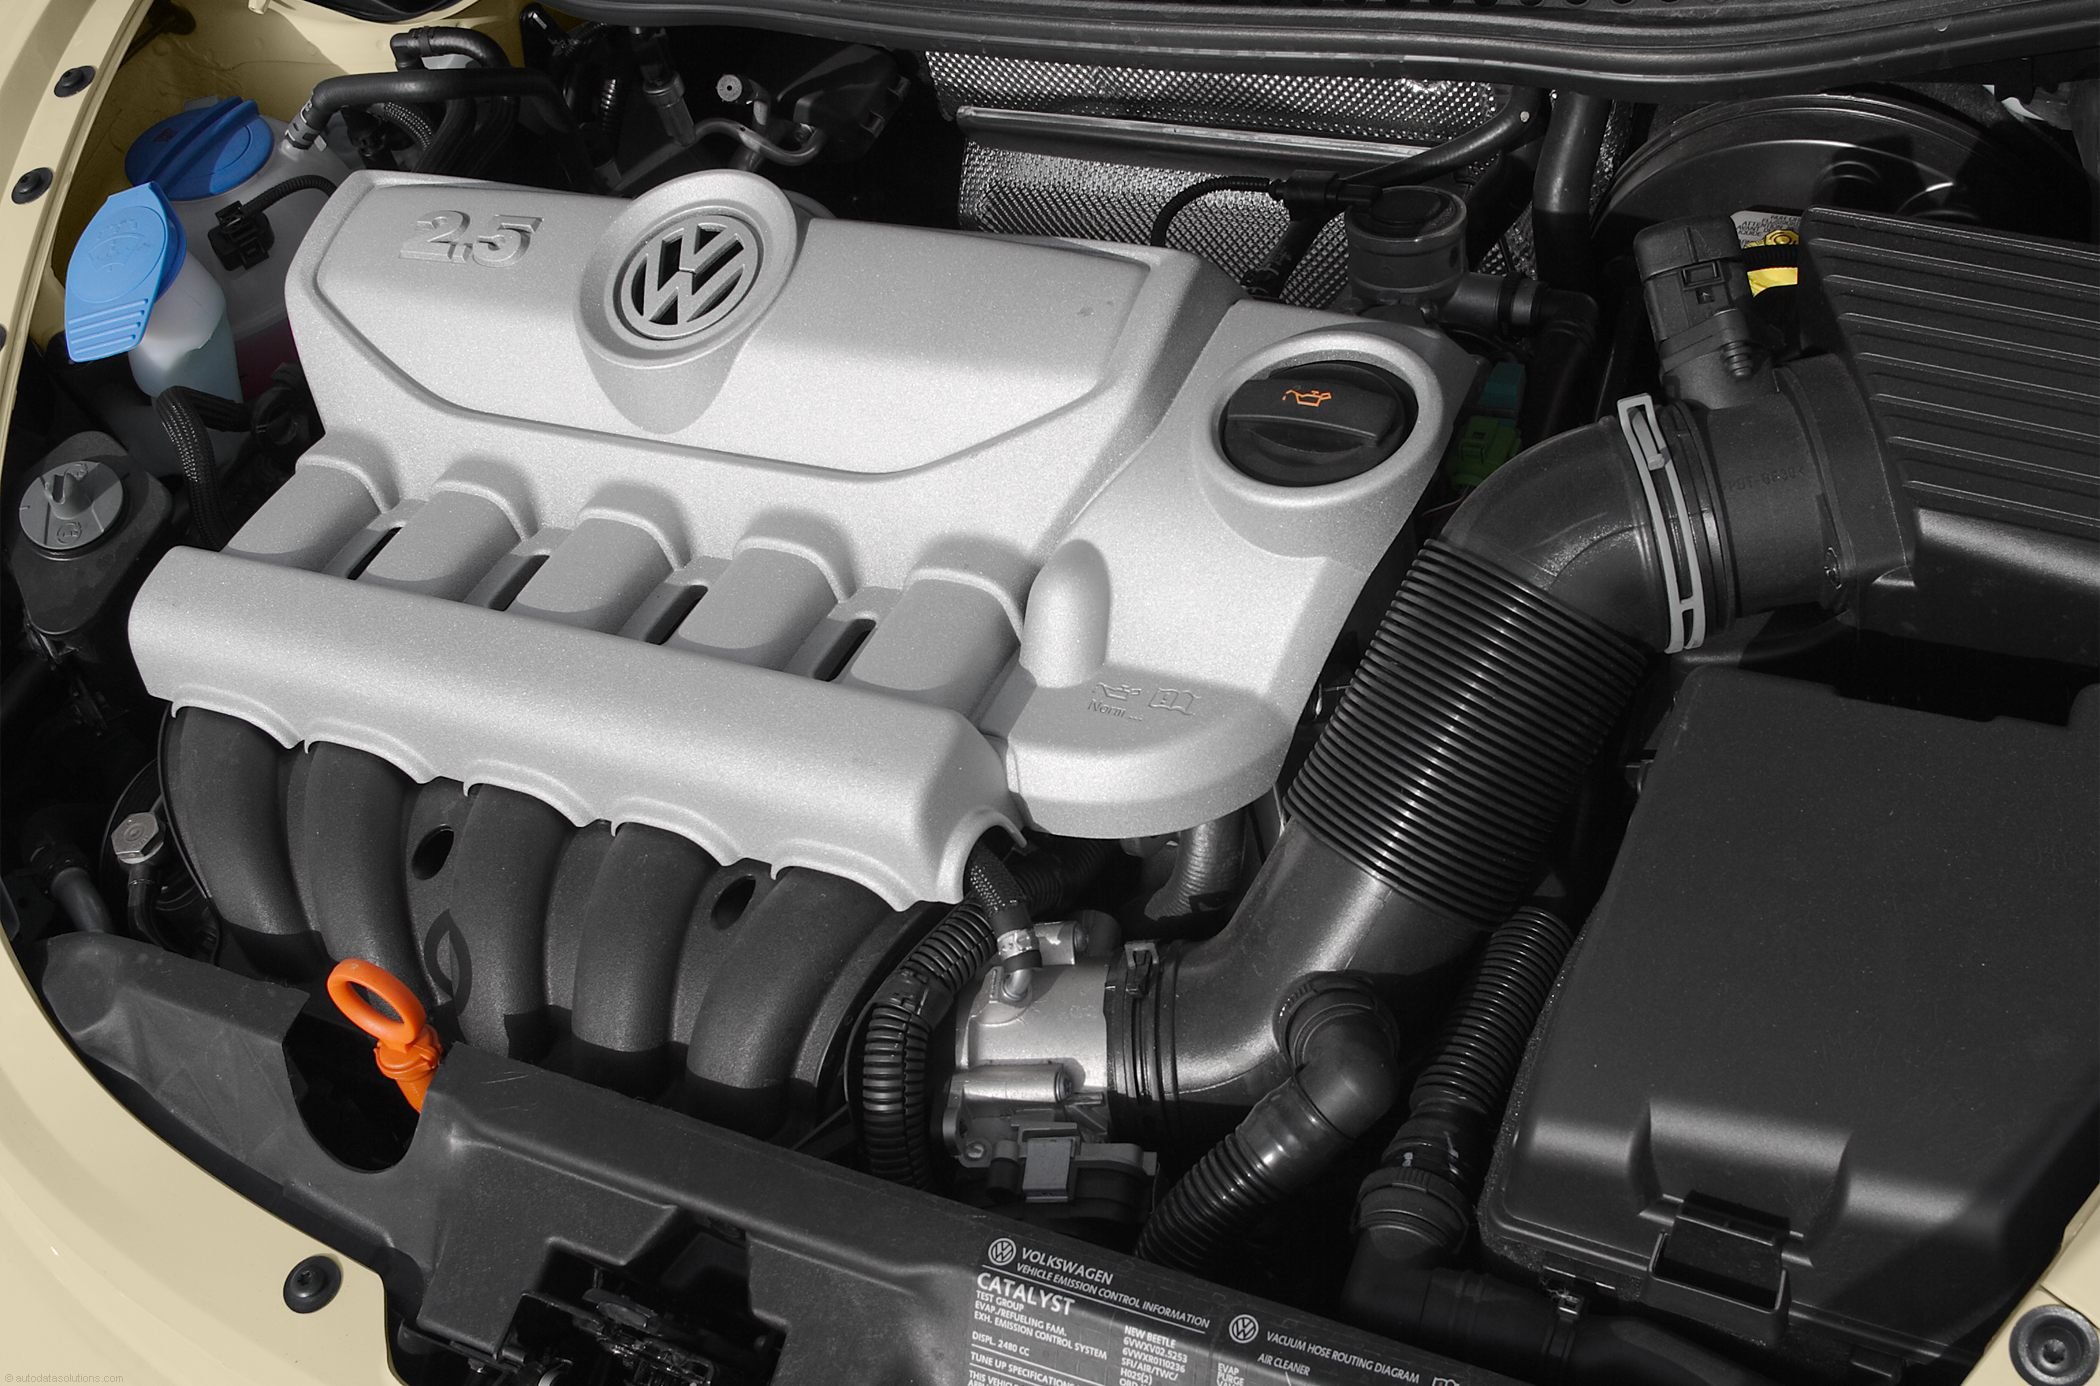 Volkswagen New Beetle engine #2